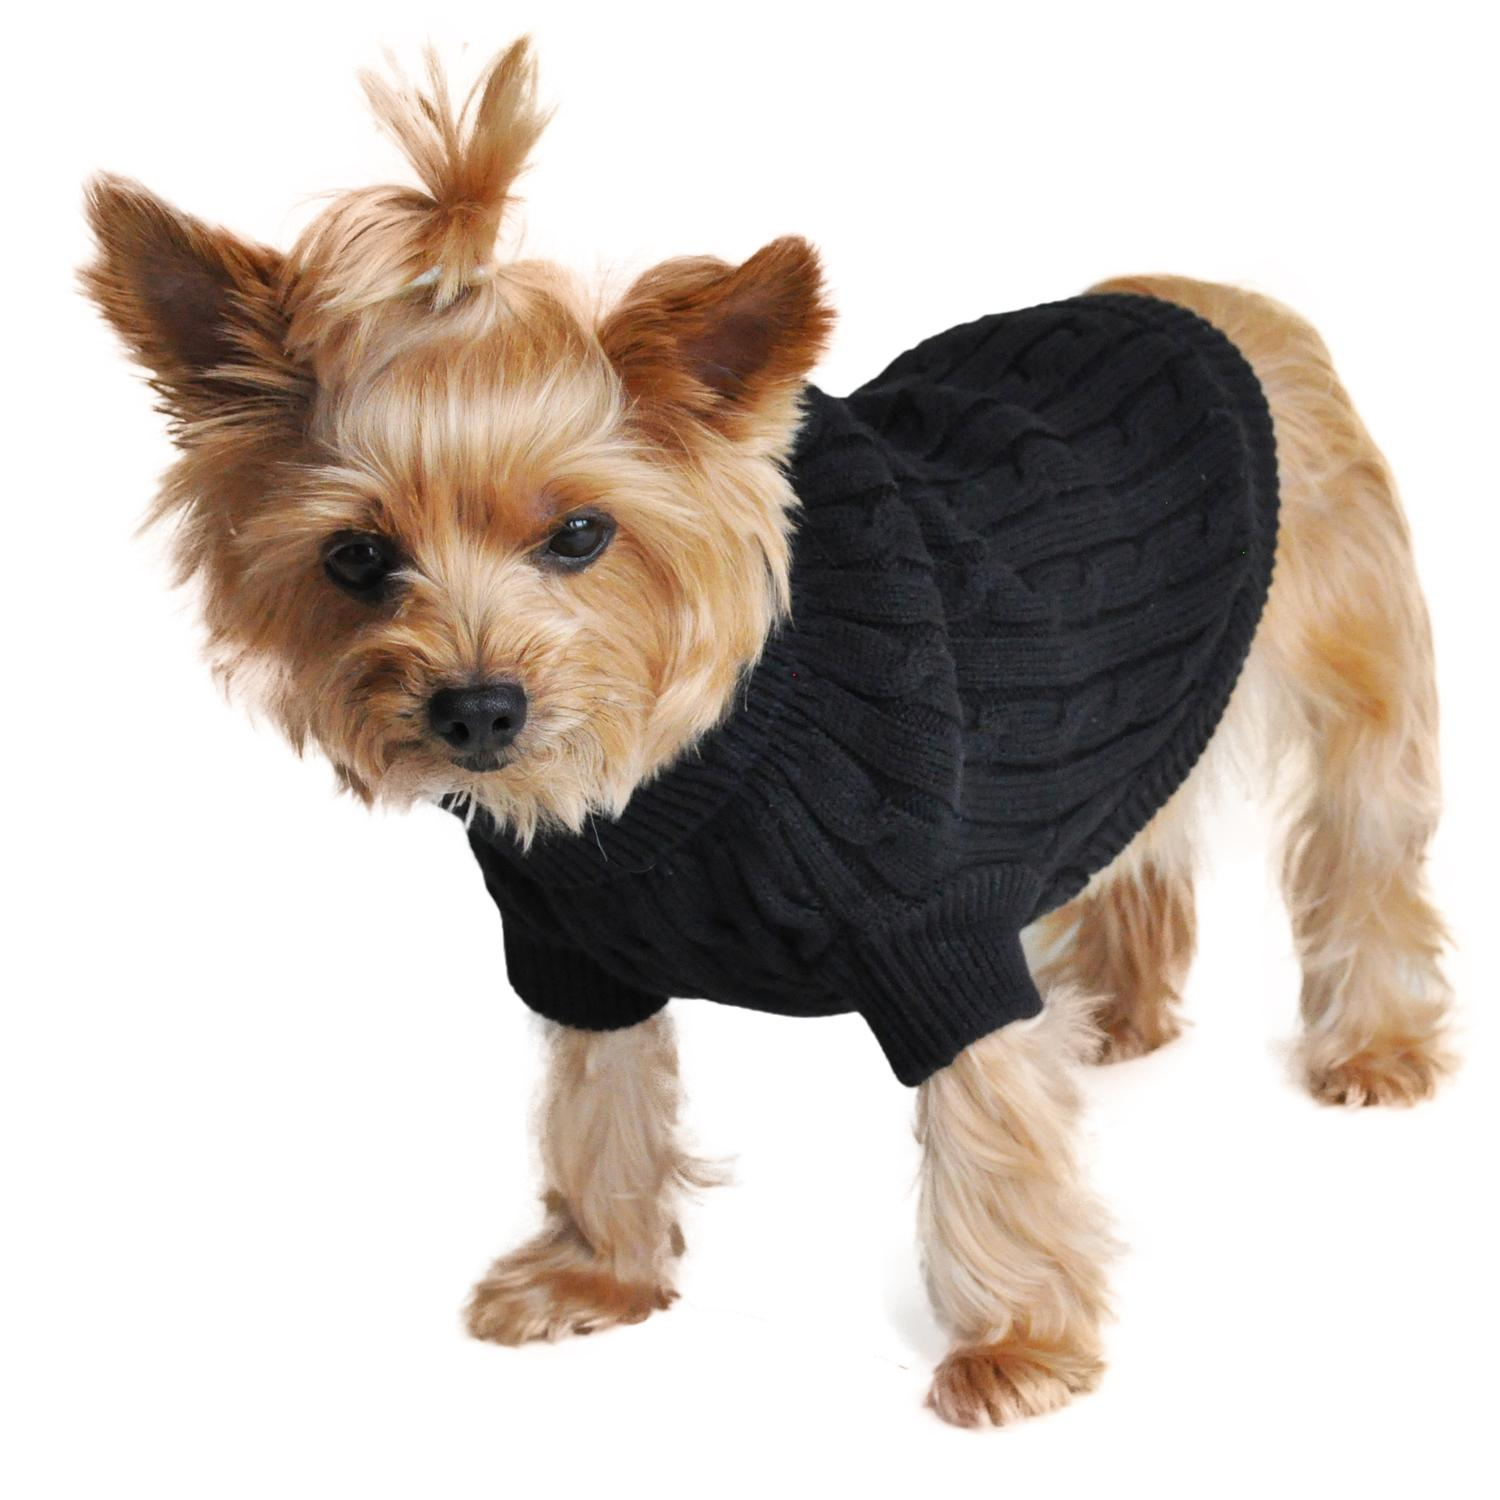 20c08716147b29 Cable Knit Dog Sweater by Doggie Design - Jet...